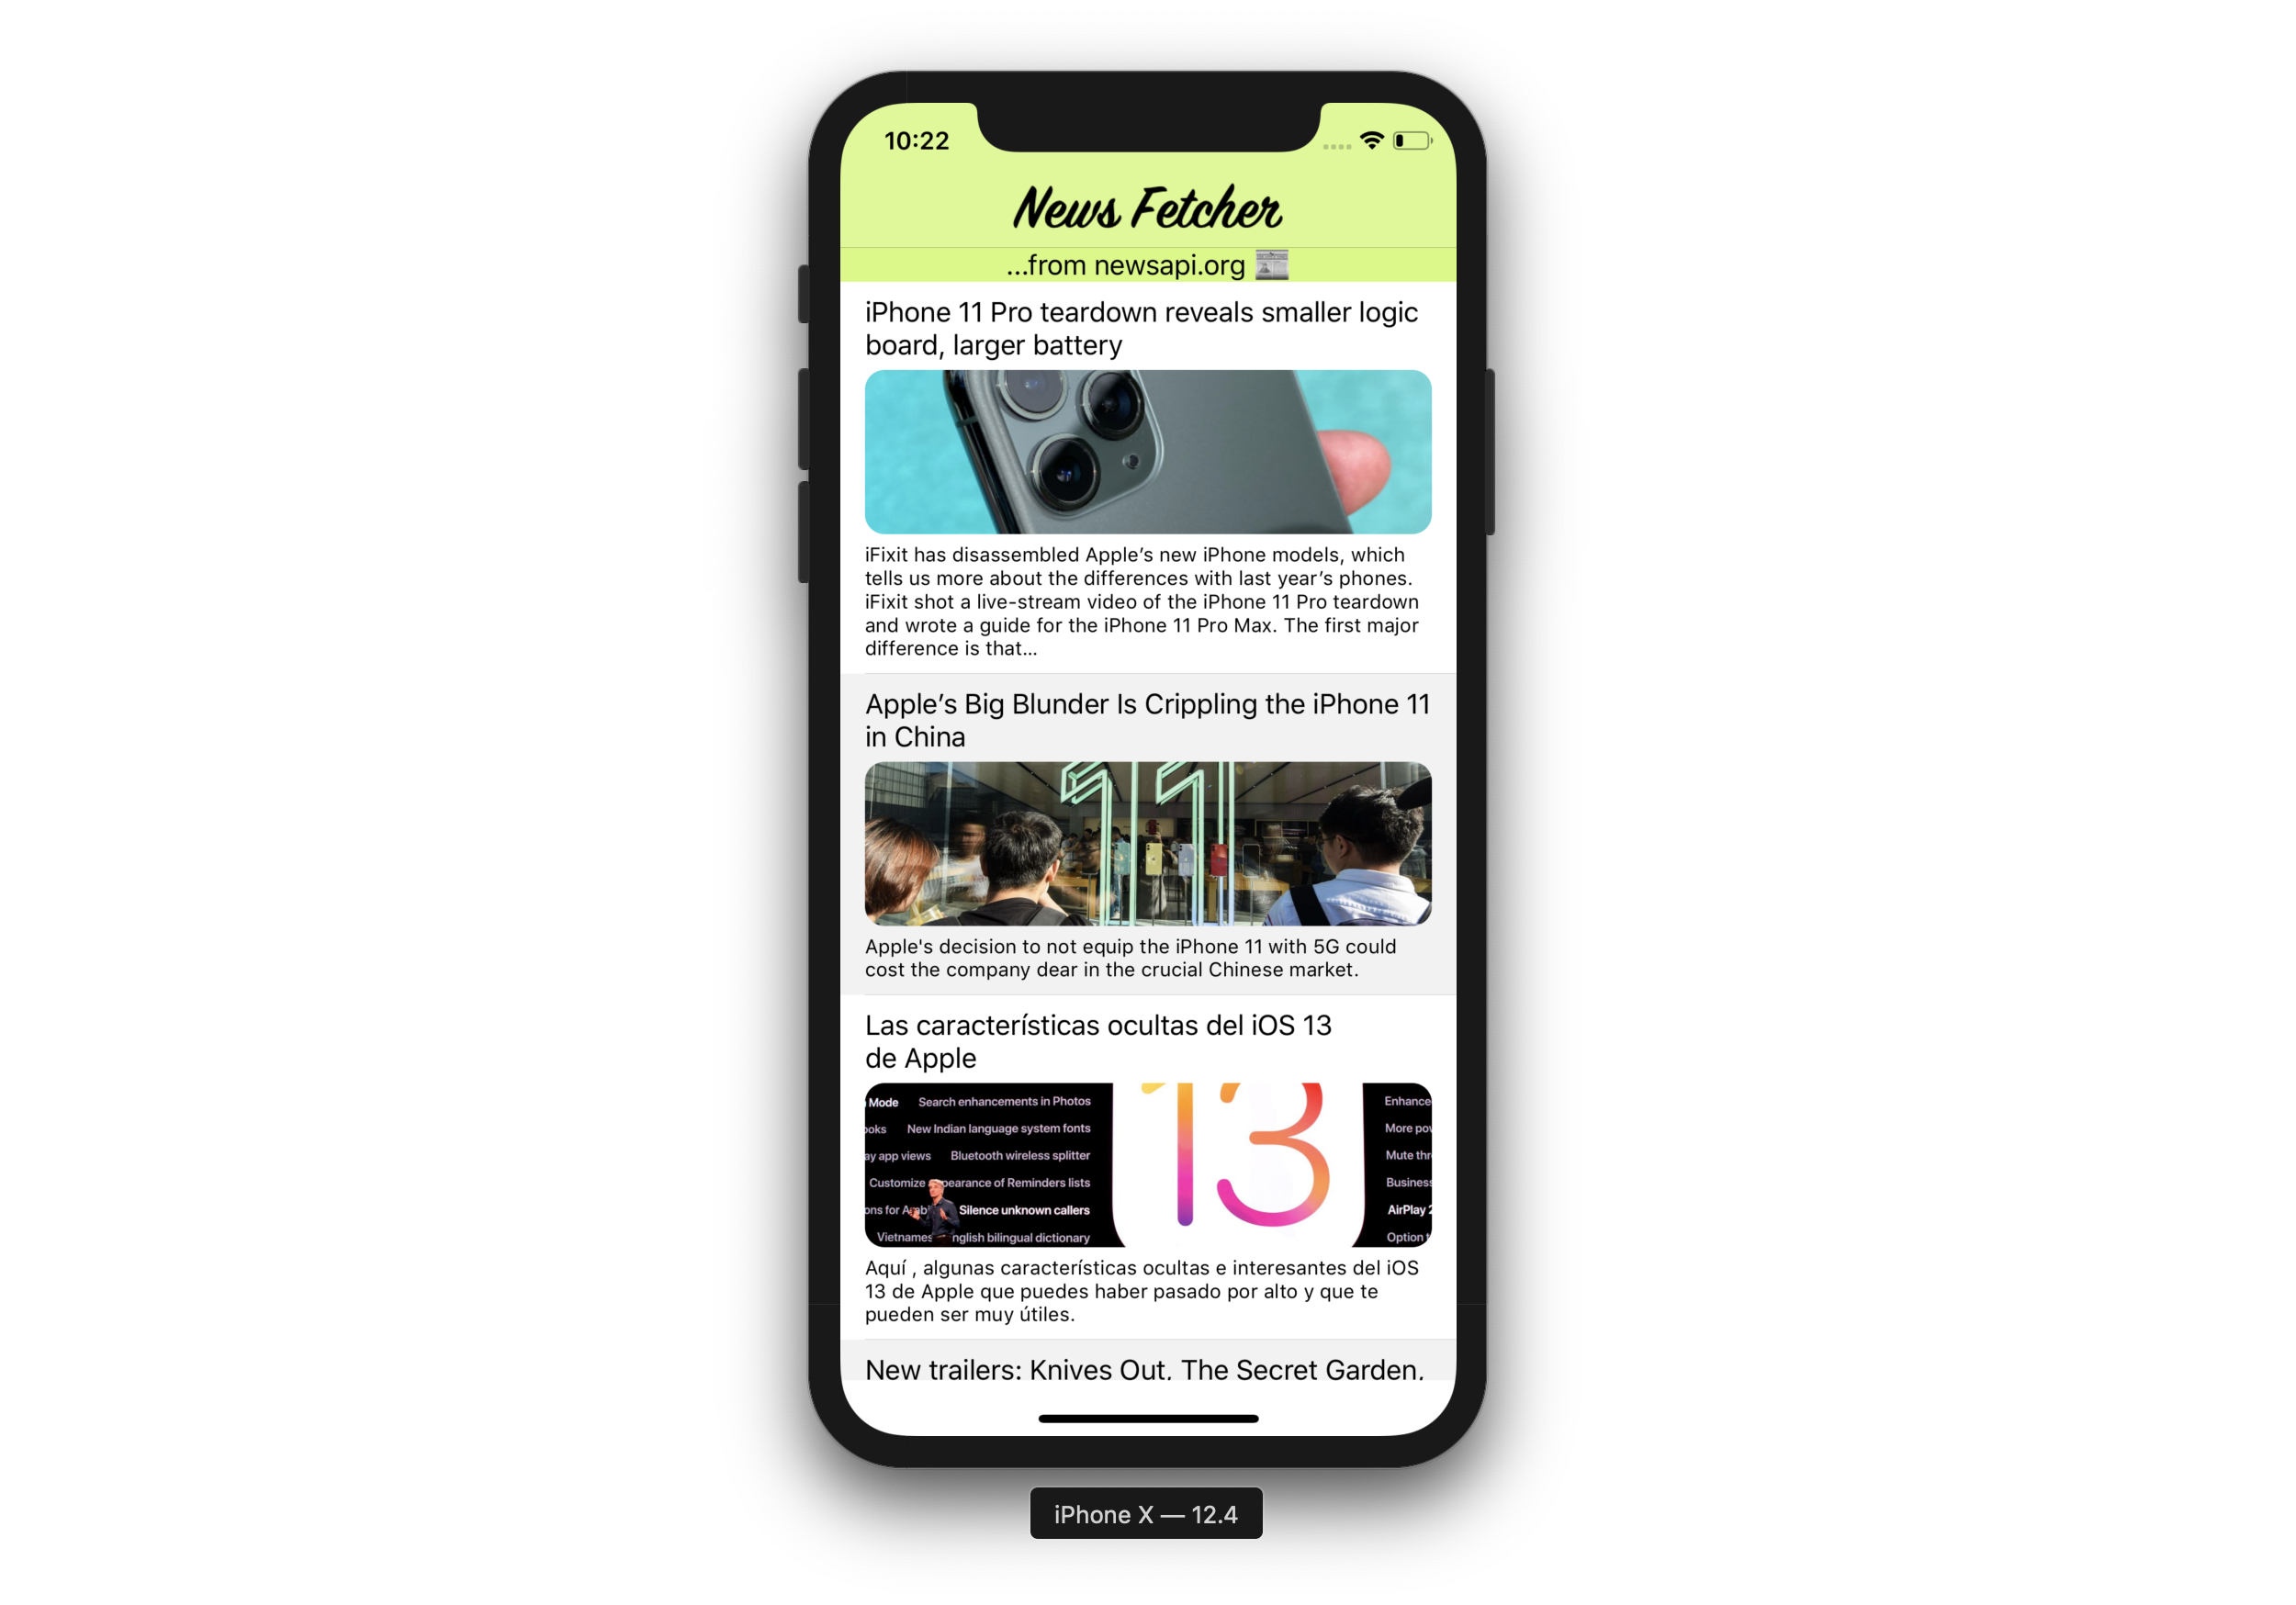 A screenshot of an iPhone showing news articles in a custom app